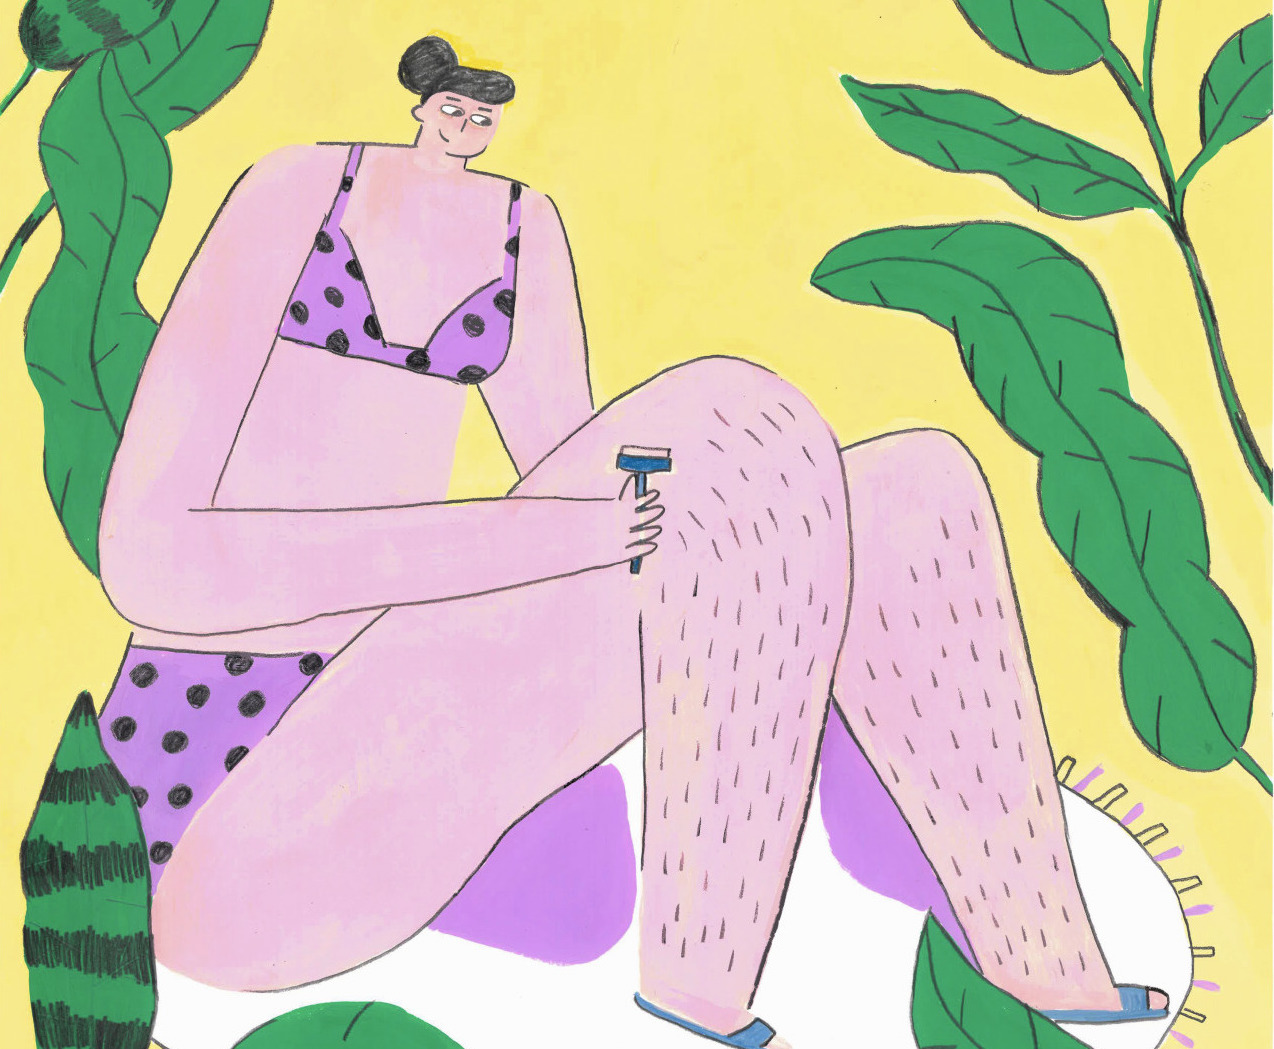 The illustrations on taboos of sexuality by Shut Up Claudia